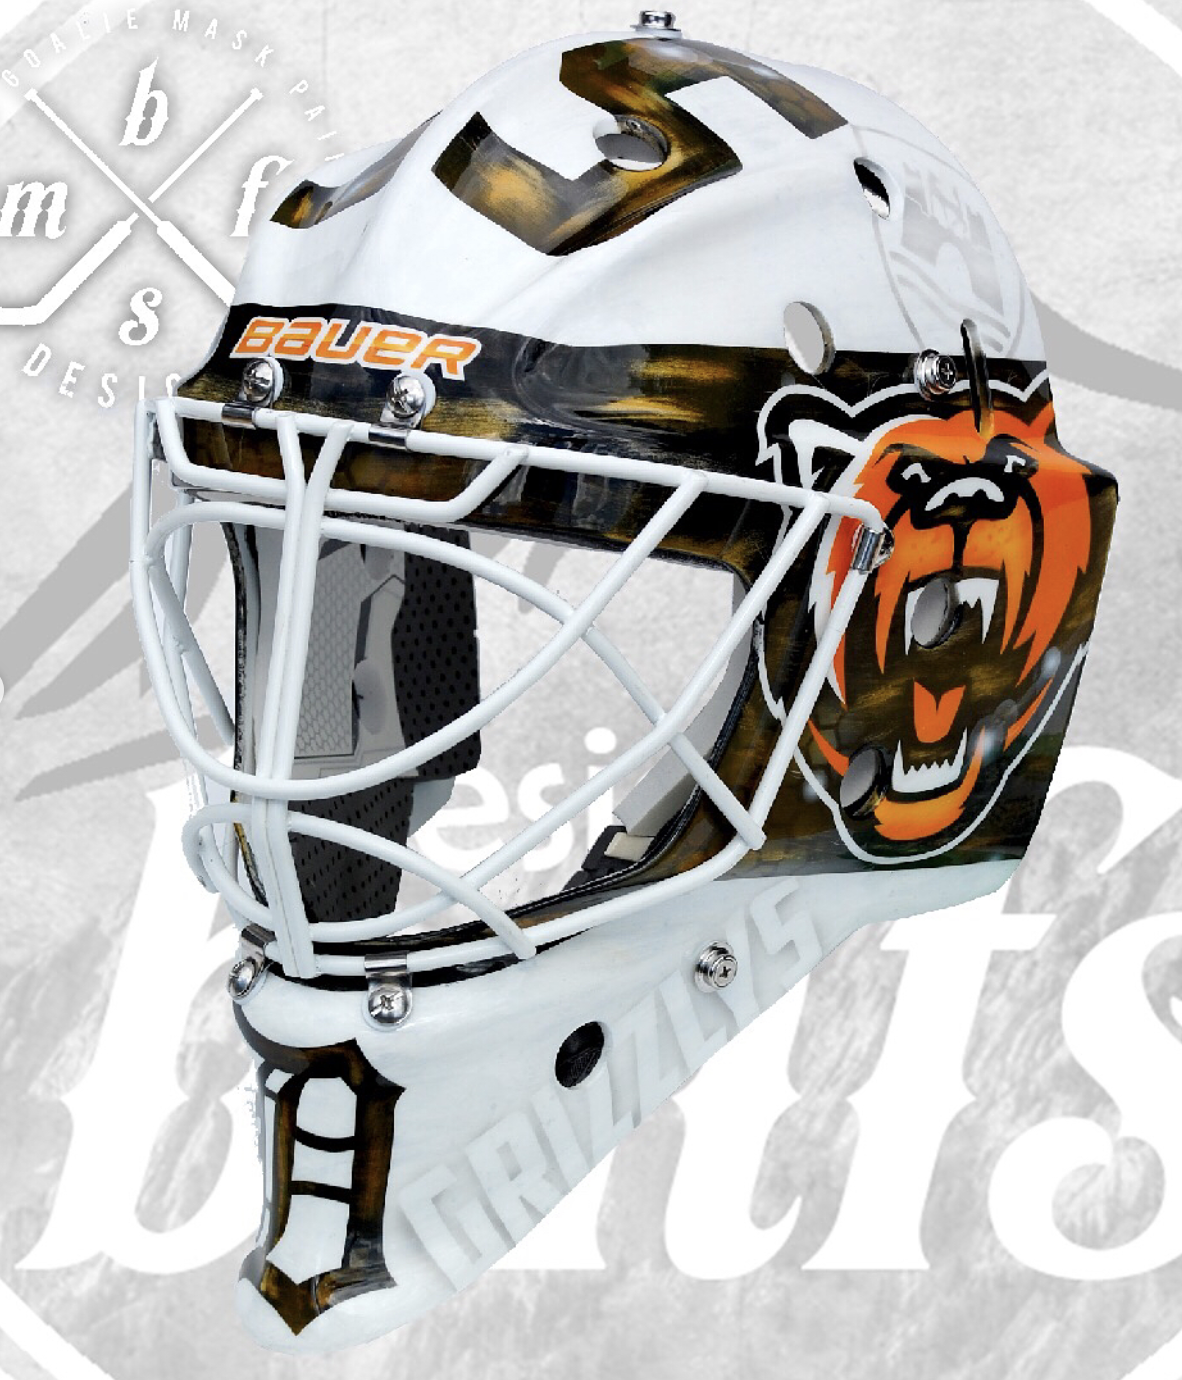 newest 2c3a6 375b2 This is one of our favorite white based goalie mask ideas from our list of  paint job ideas.